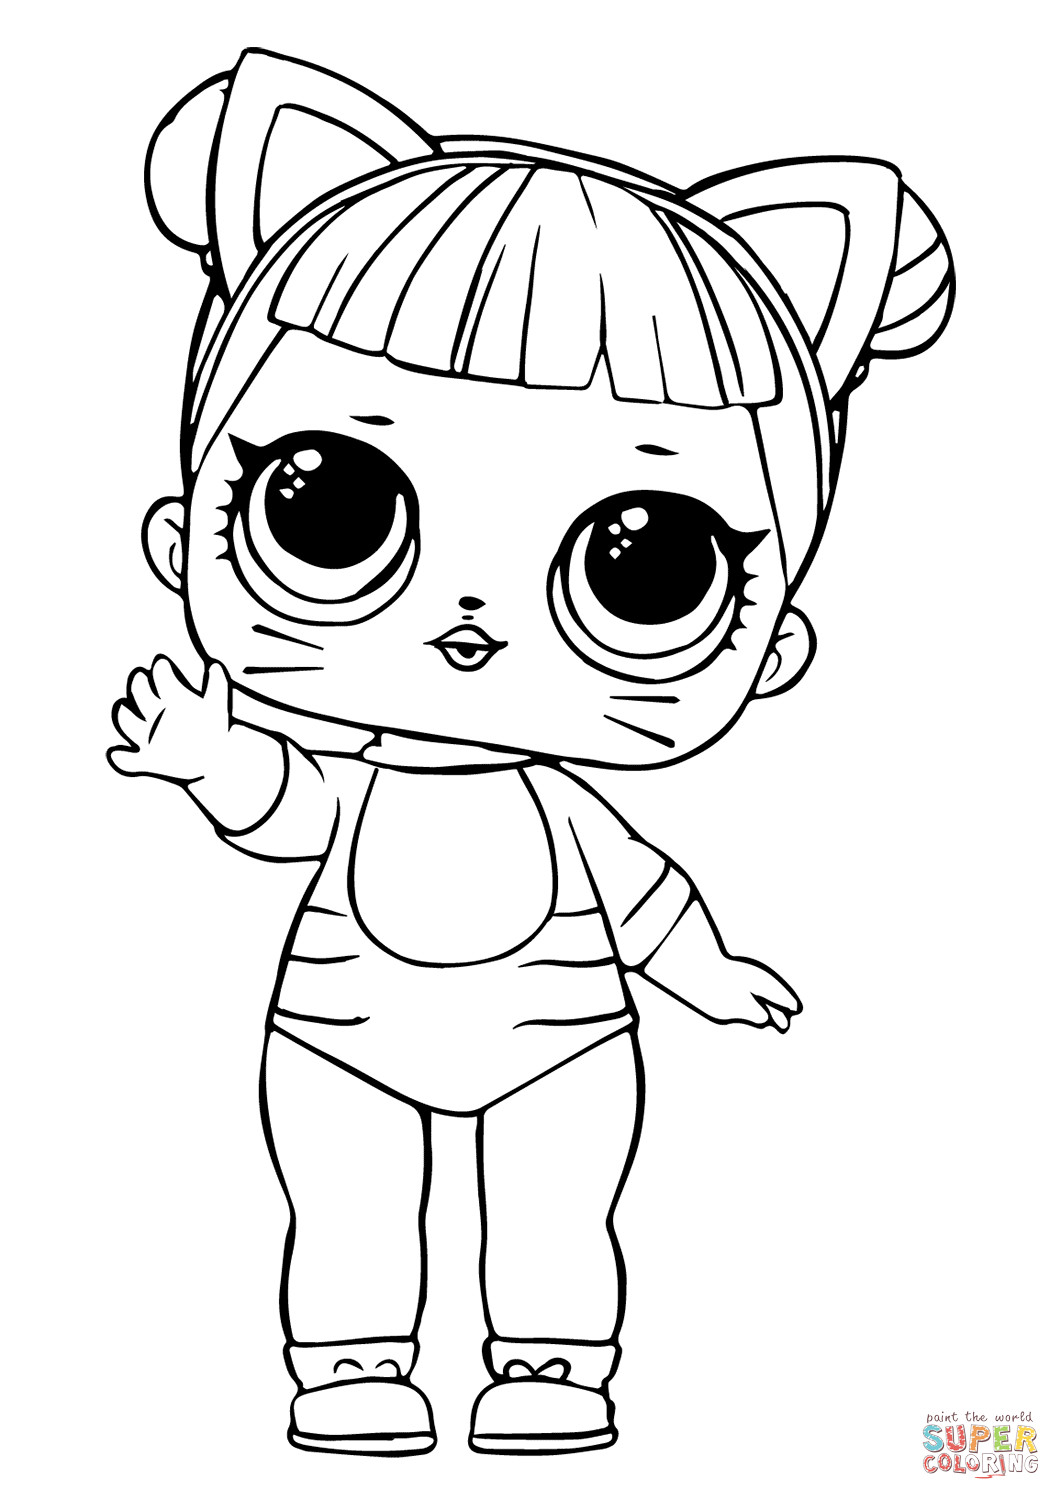 The Best Ideas for Baby Lol Coloring Pages - Home, Family ...